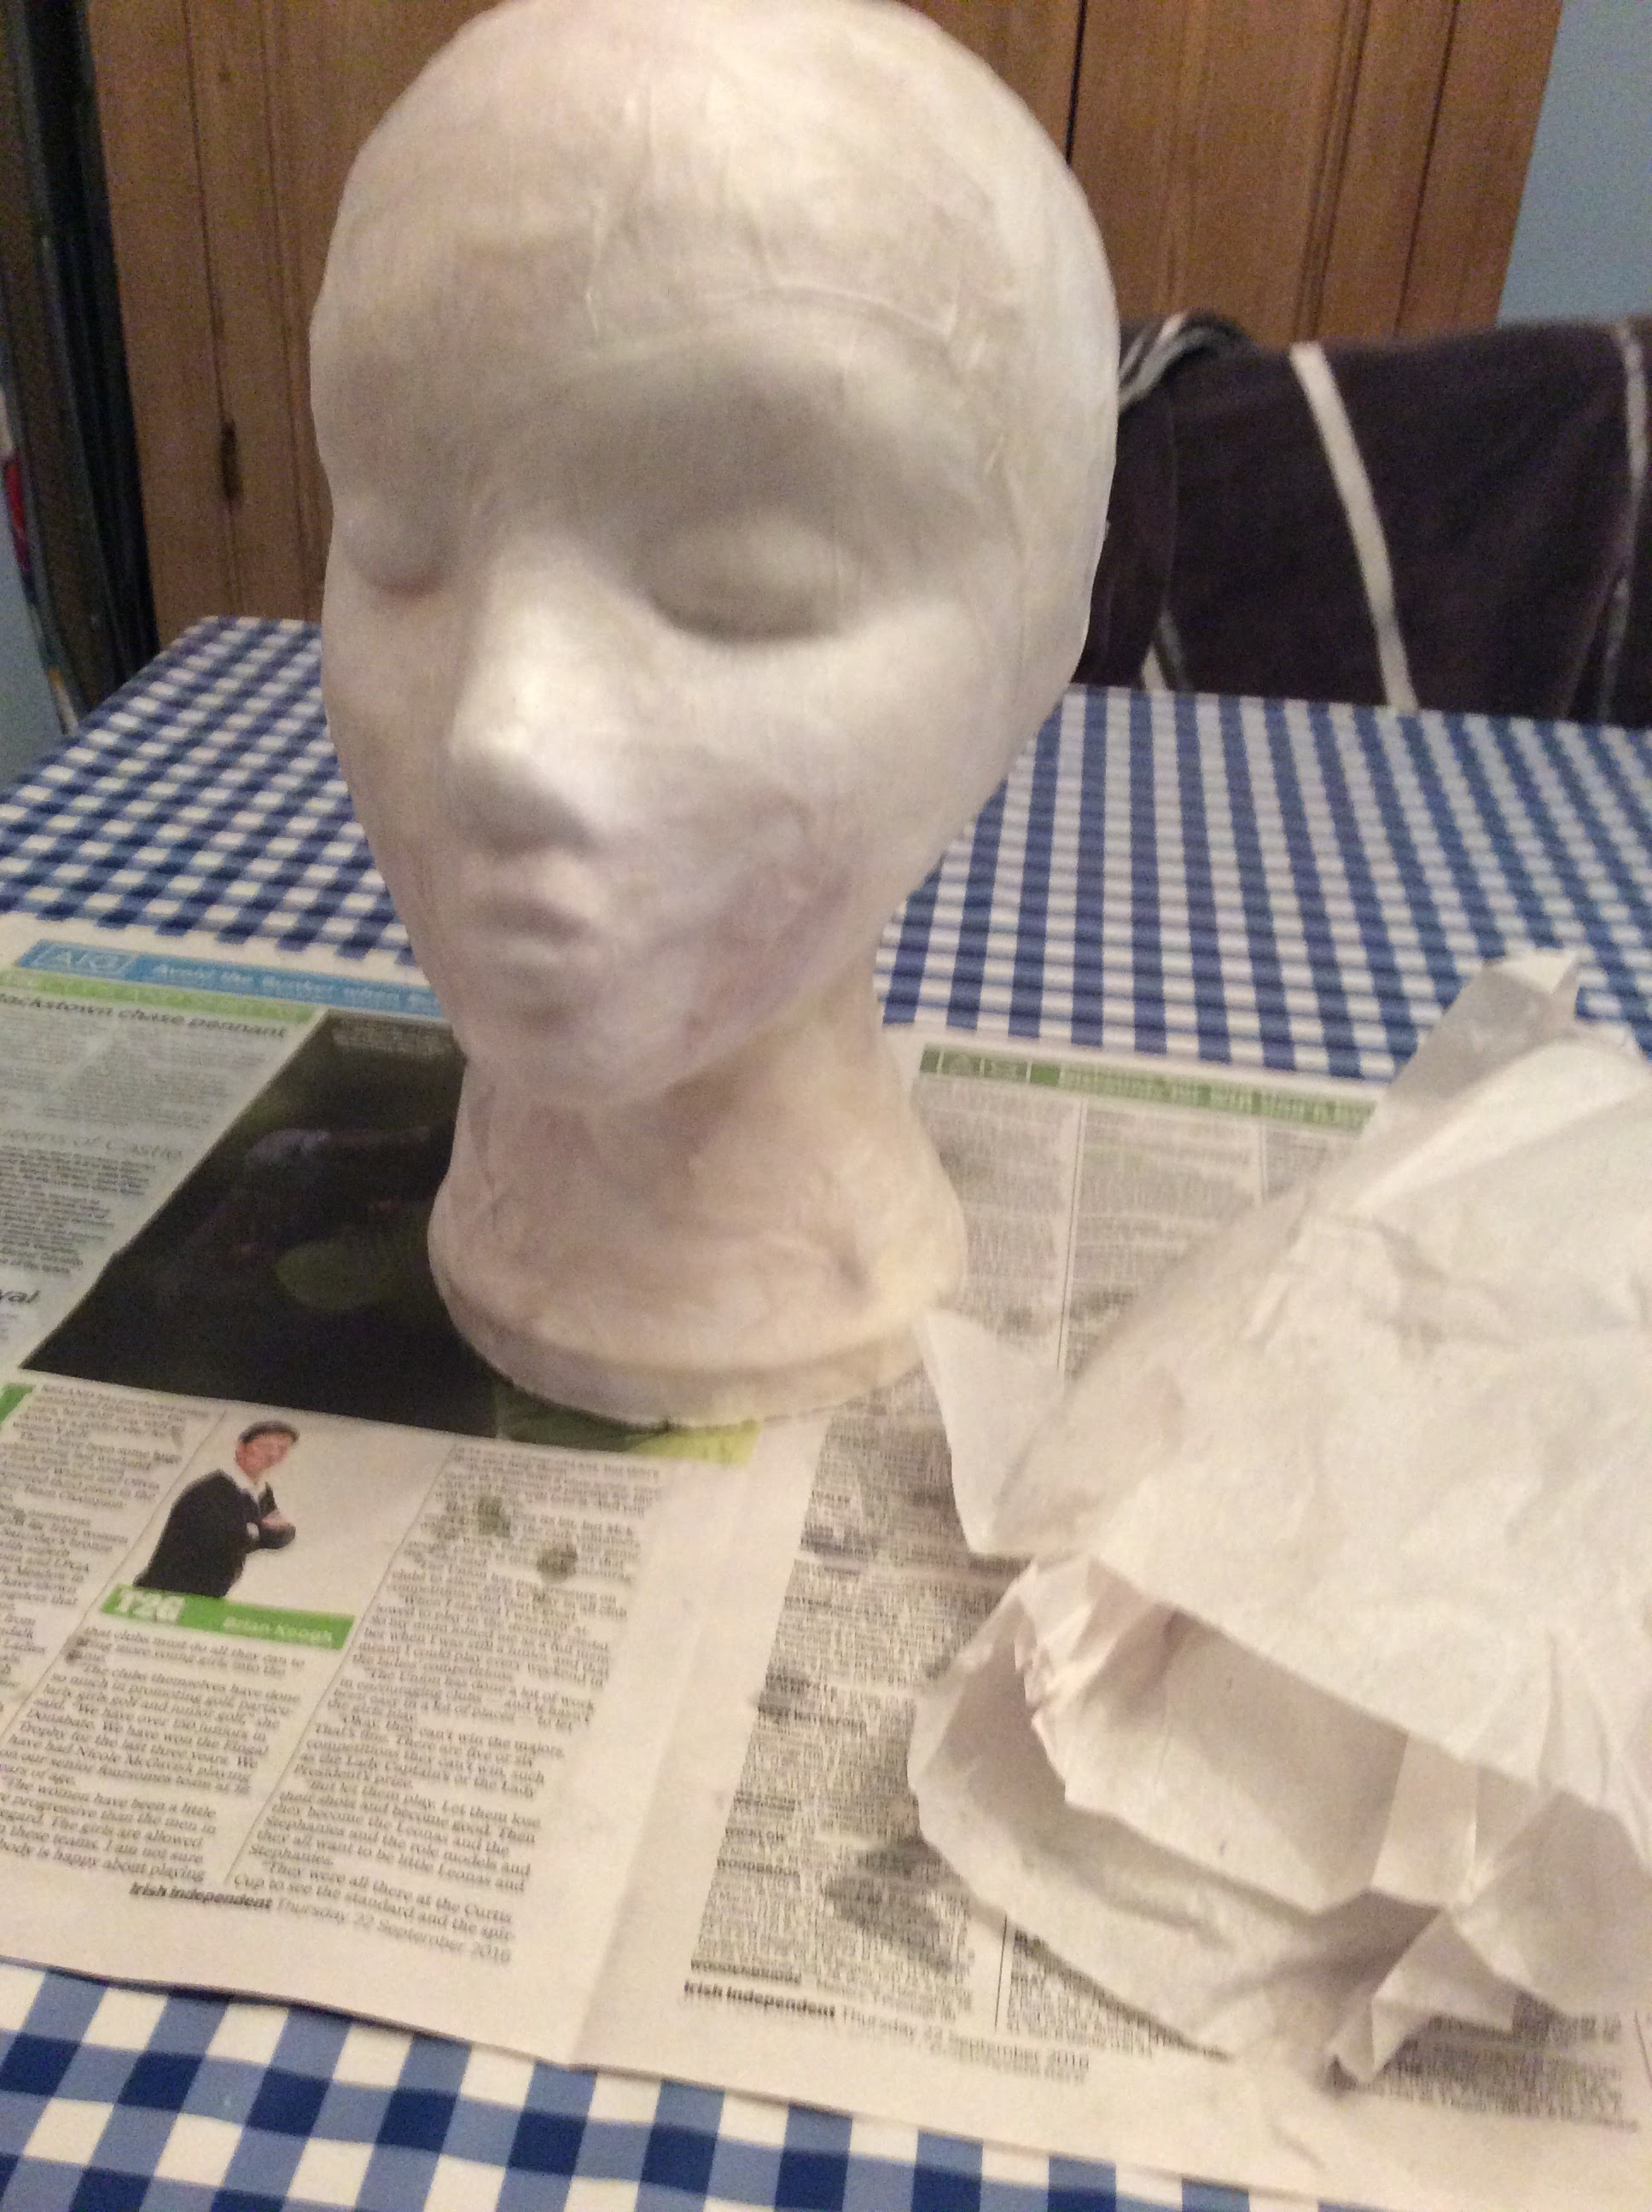 STEP TWO.......Fine tissue paper was applied